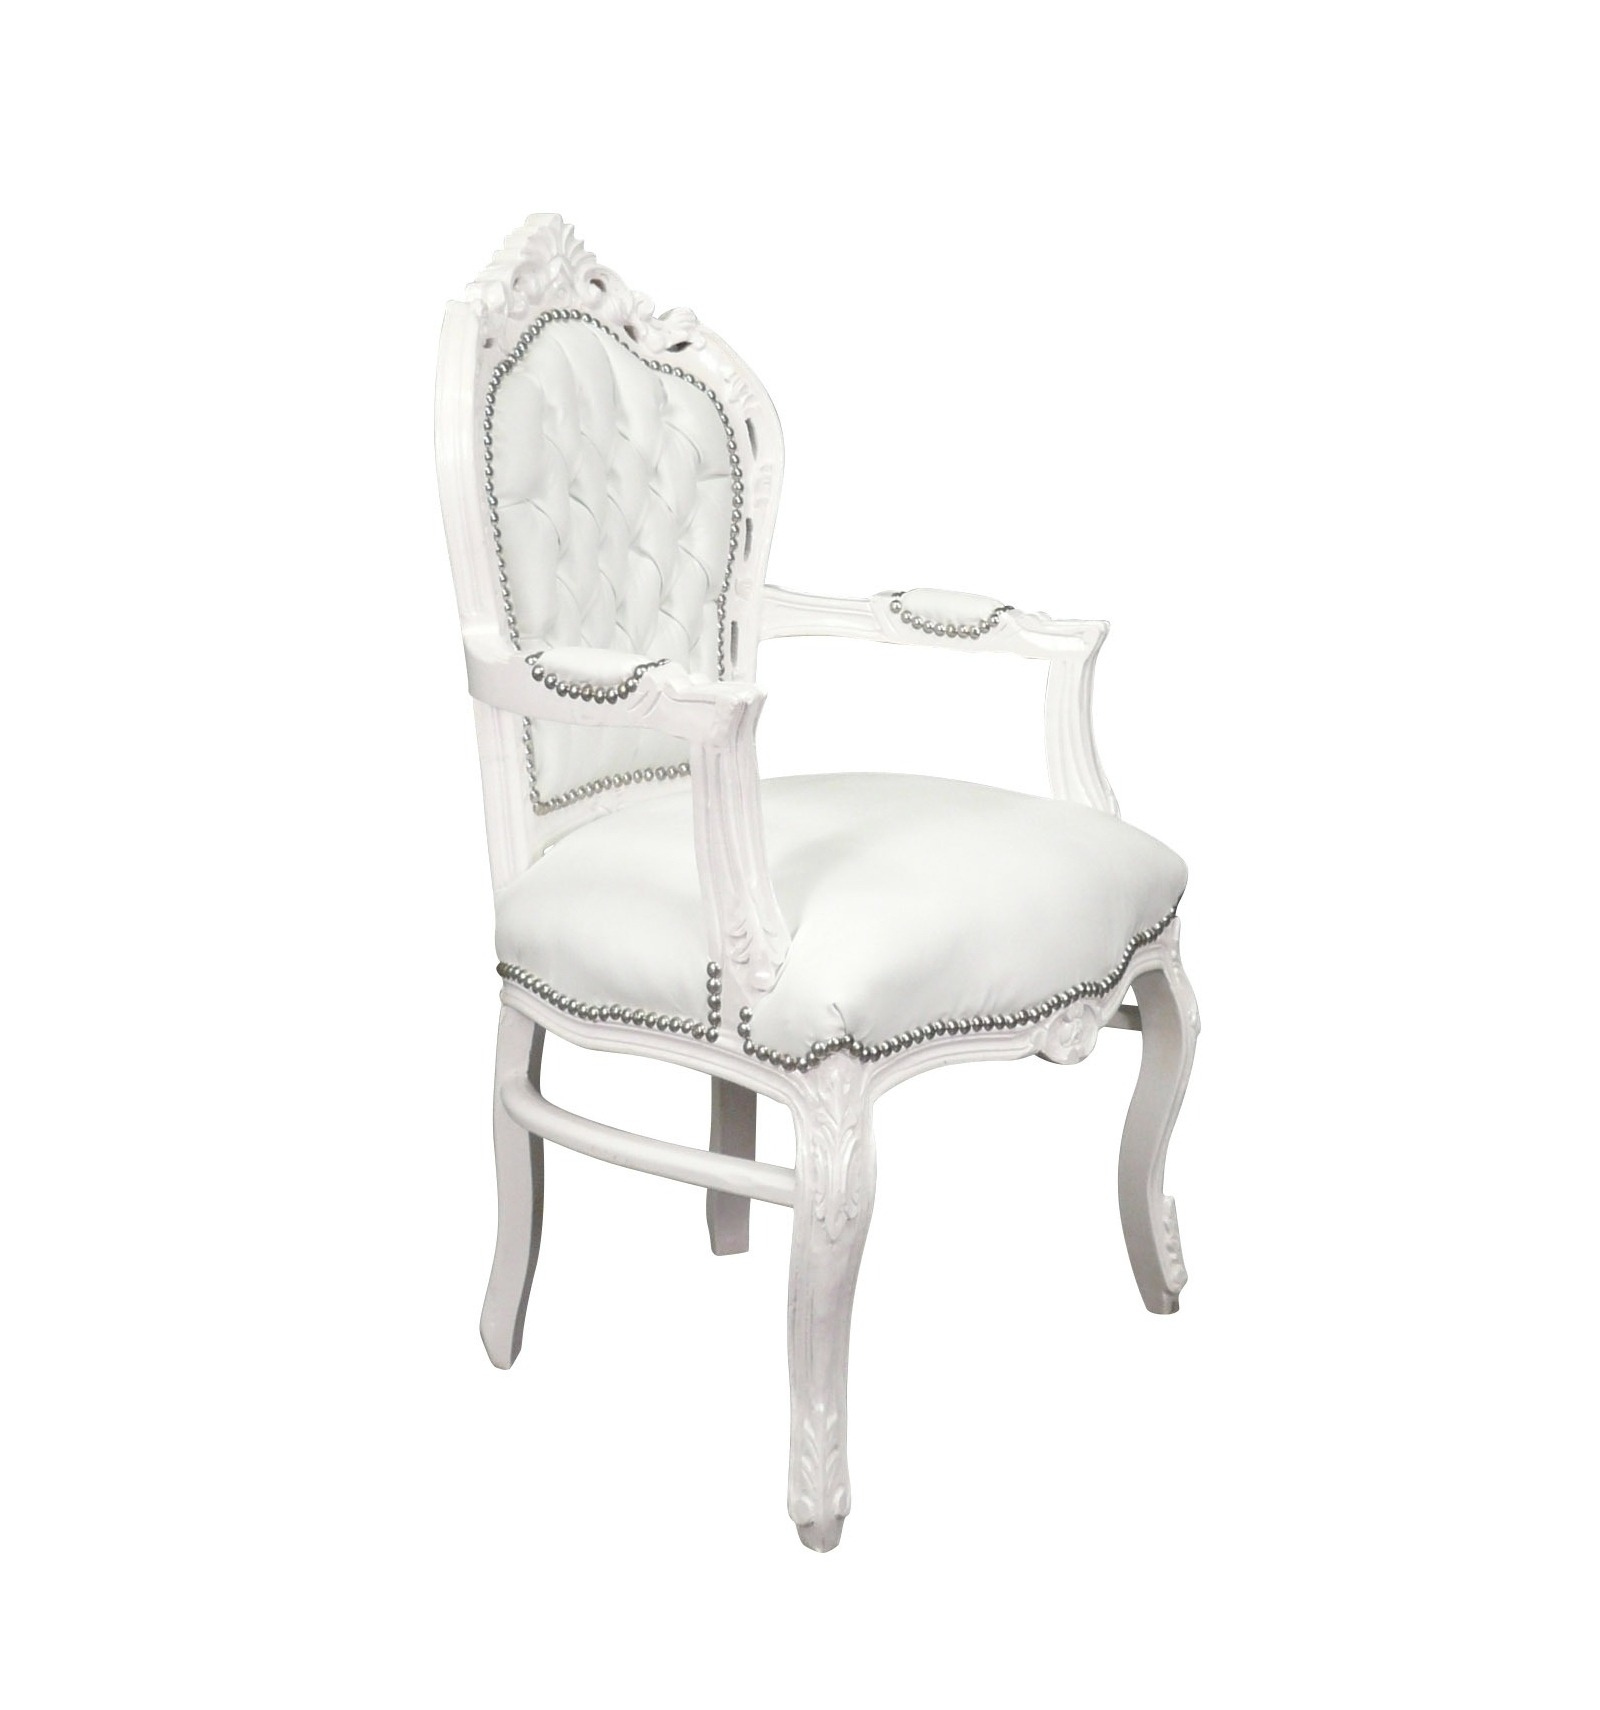 fauteuil baroque blanc et mobilier de style. Black Bedroom Furniture Sets. Home Design Ideas